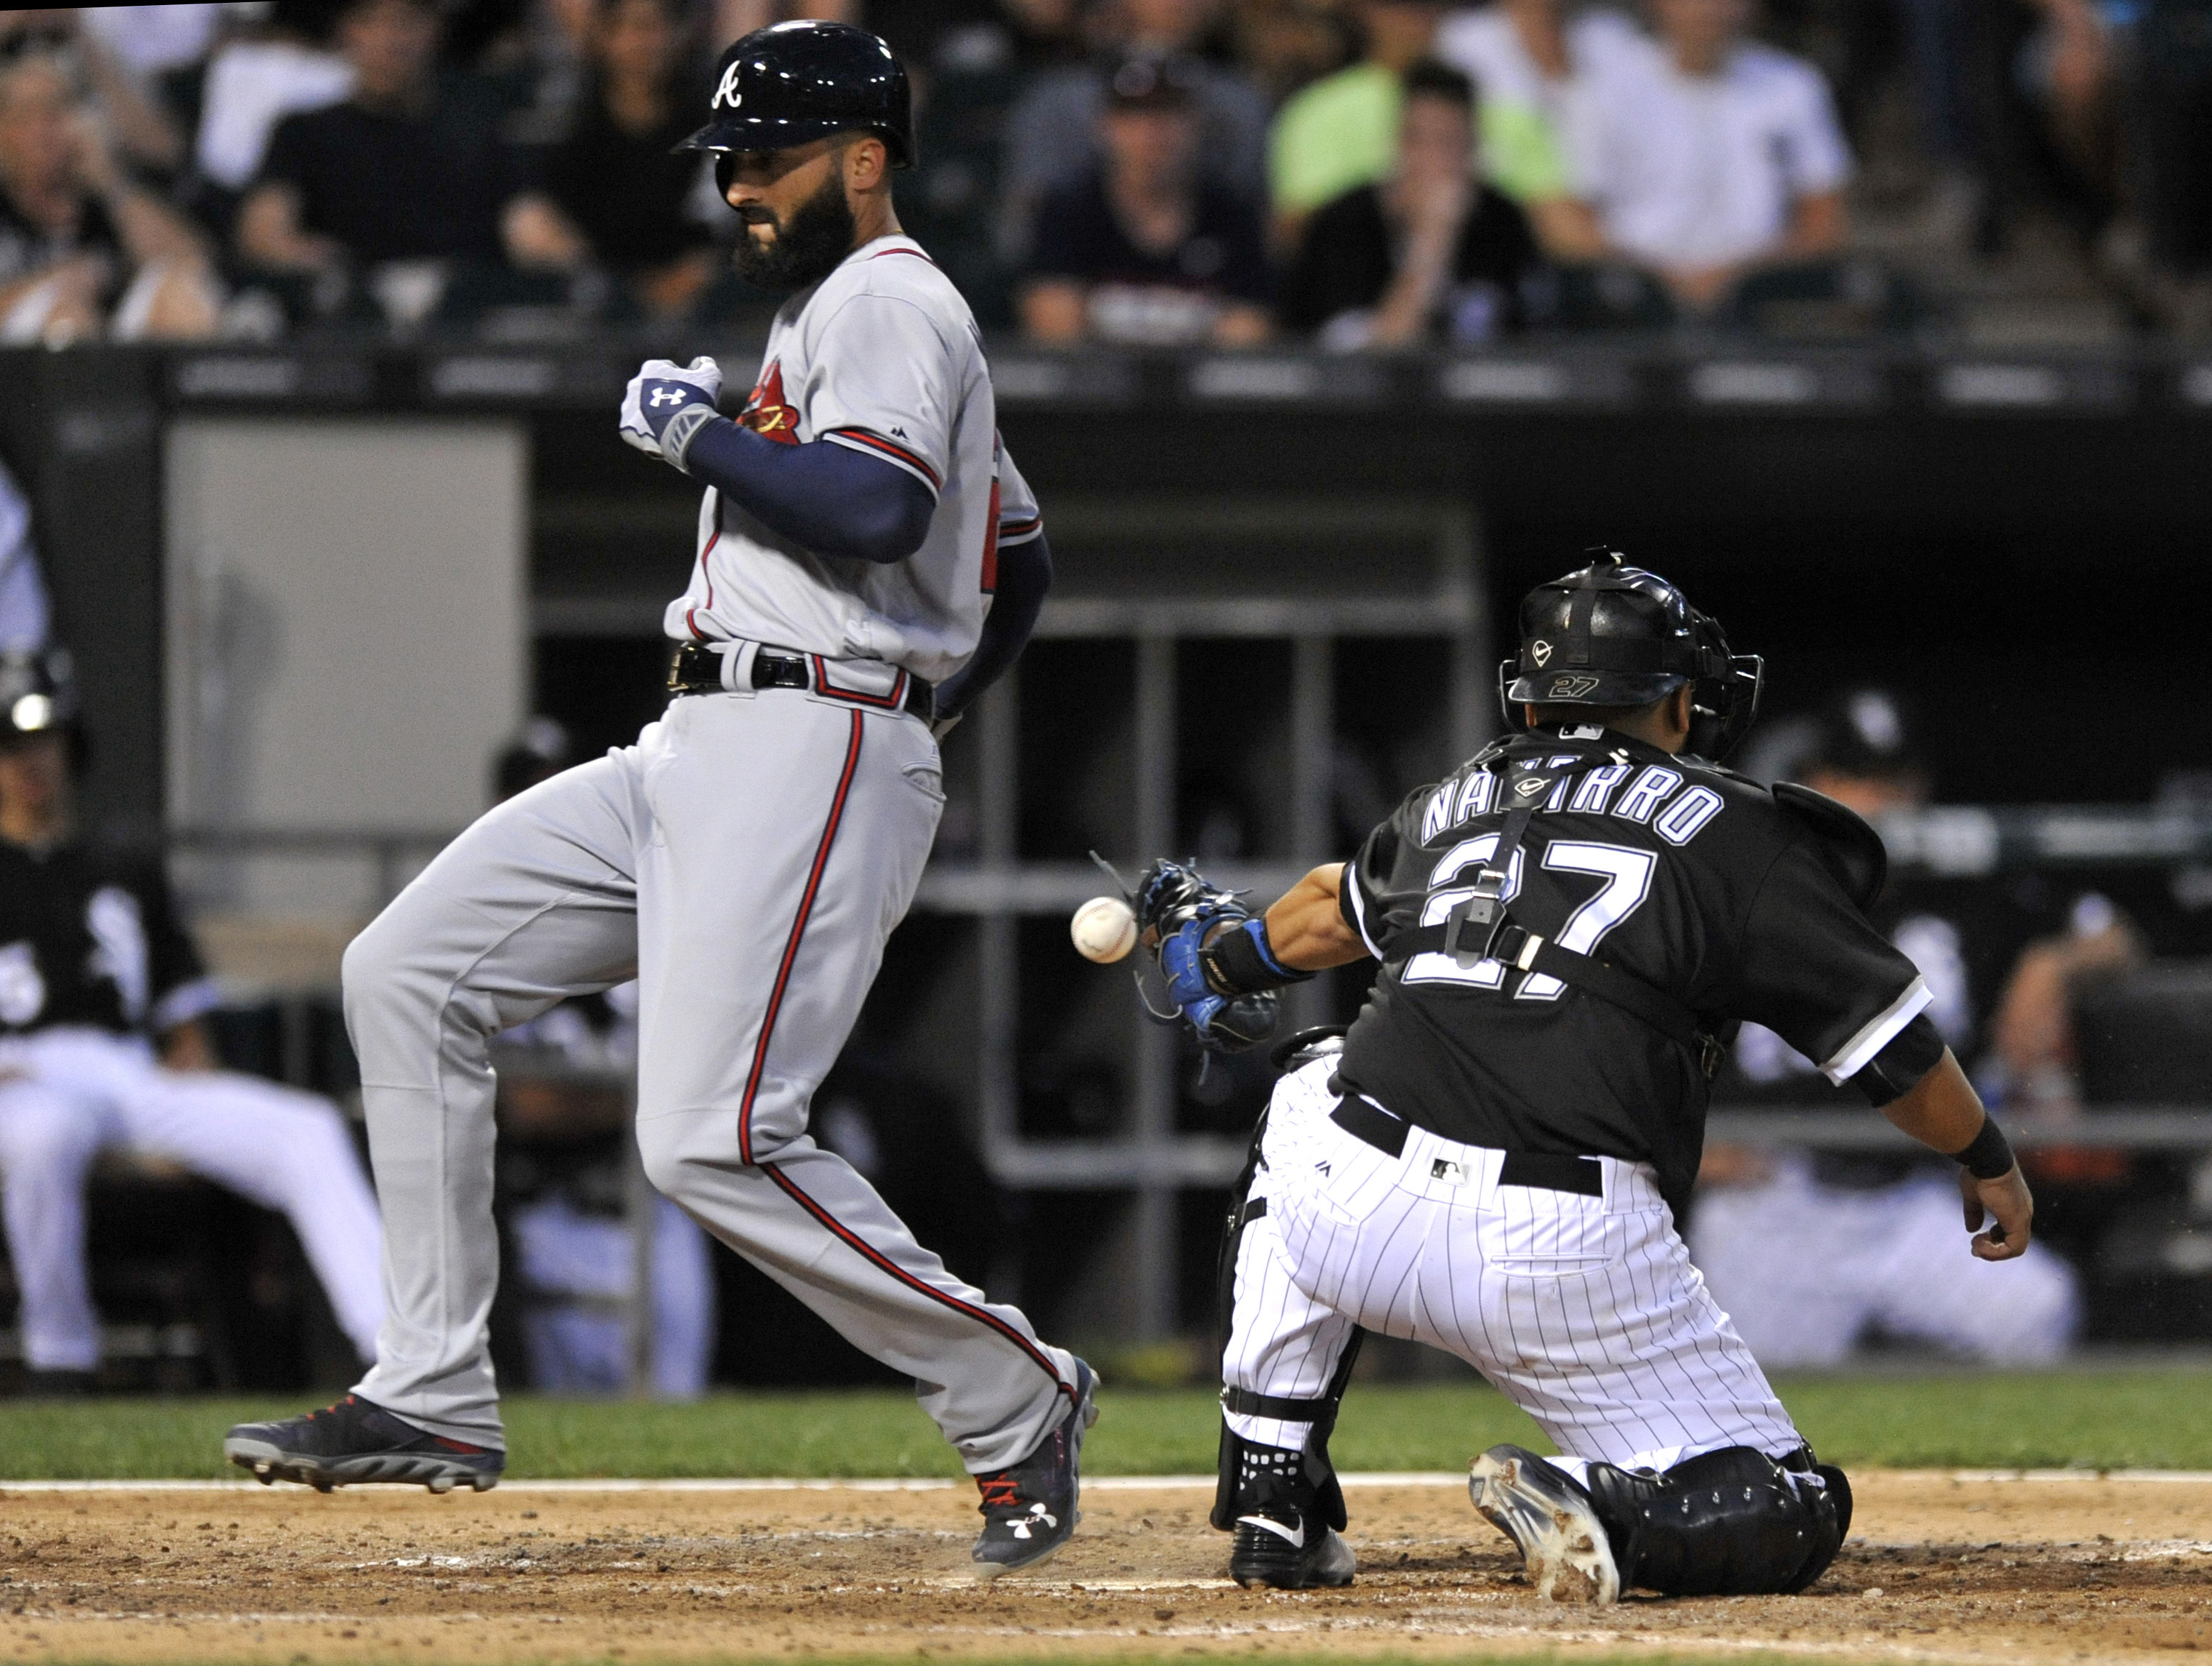 Atlanta Braves' Nick Markakis left, scores on a Jeff Francoeur double while Chicago White Sox catcher Dioner Navarro (27) misses the throw during the fifth inning of a interleague baseball game Friday, July 8, 2016, in Chicago. (AP Photo/Paul Beaty)